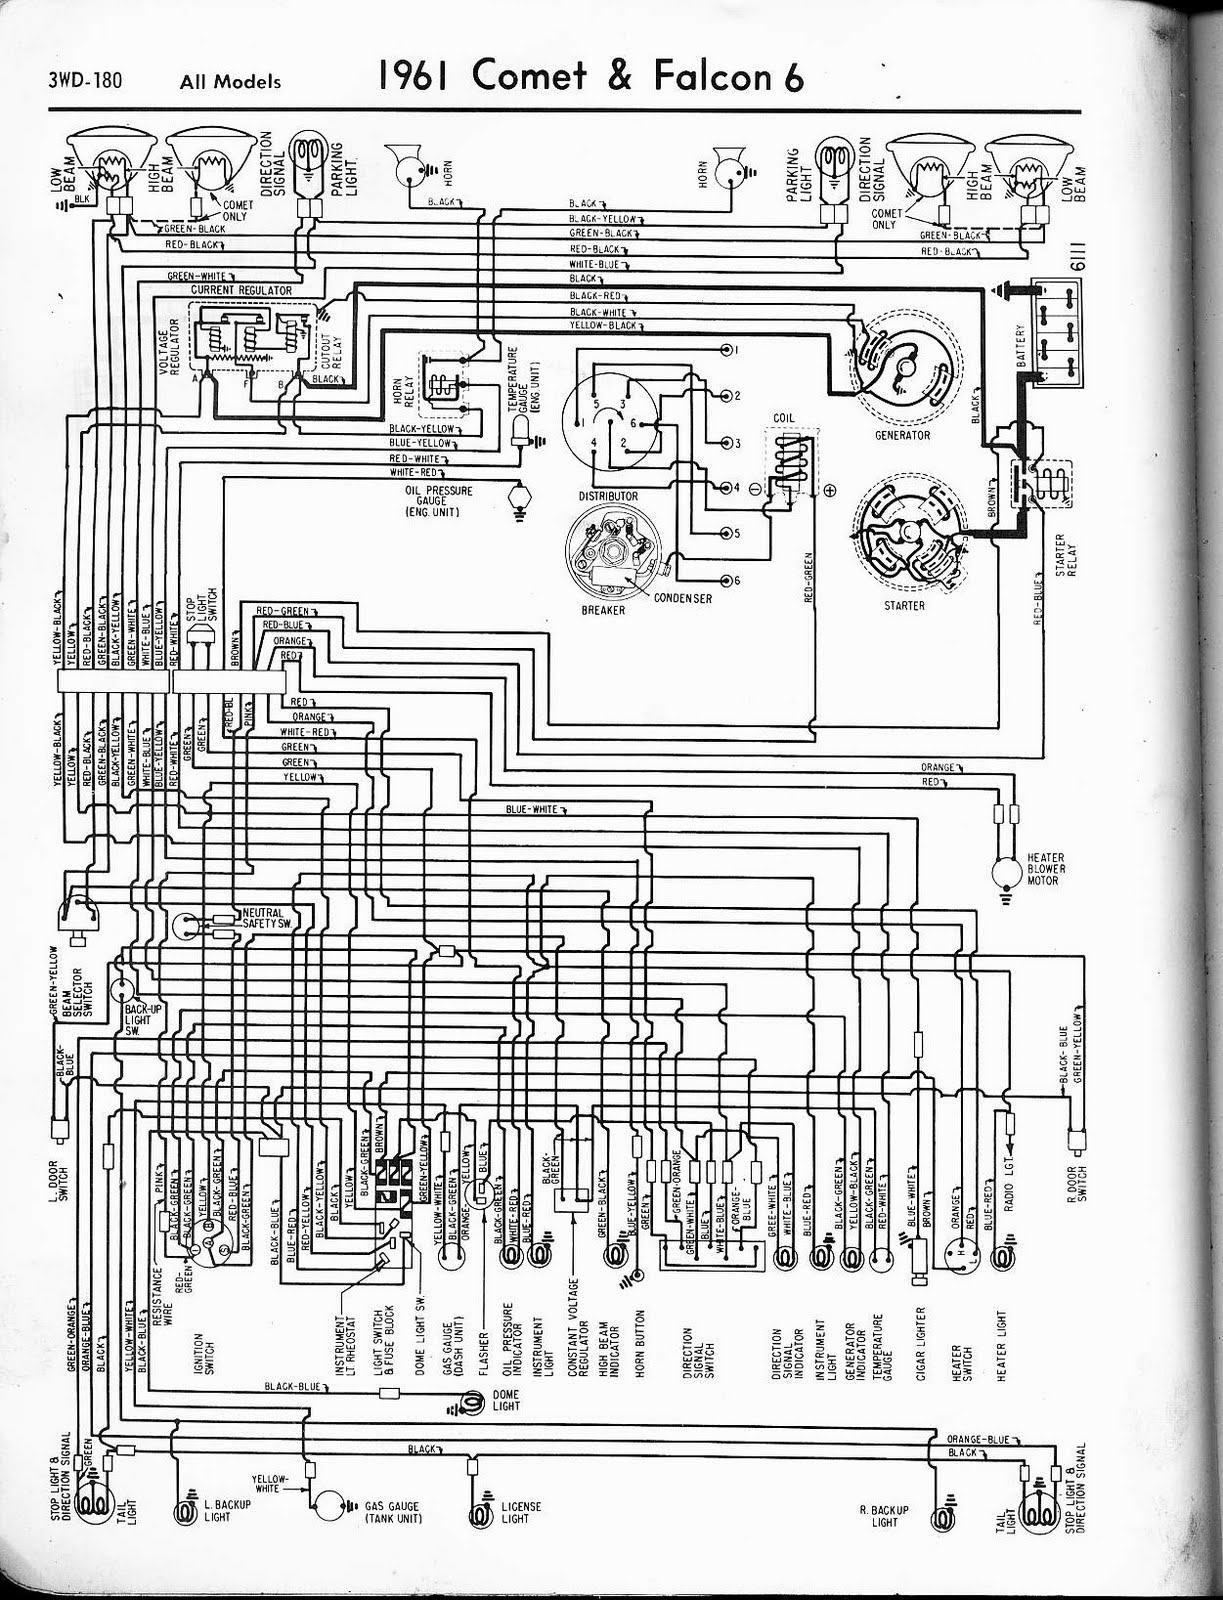 1968 Falcon Wiring Diagram Data Electrical For 1960 Chevrolet Corvair All Models Ford Xe Schematic Name Parts Catalog